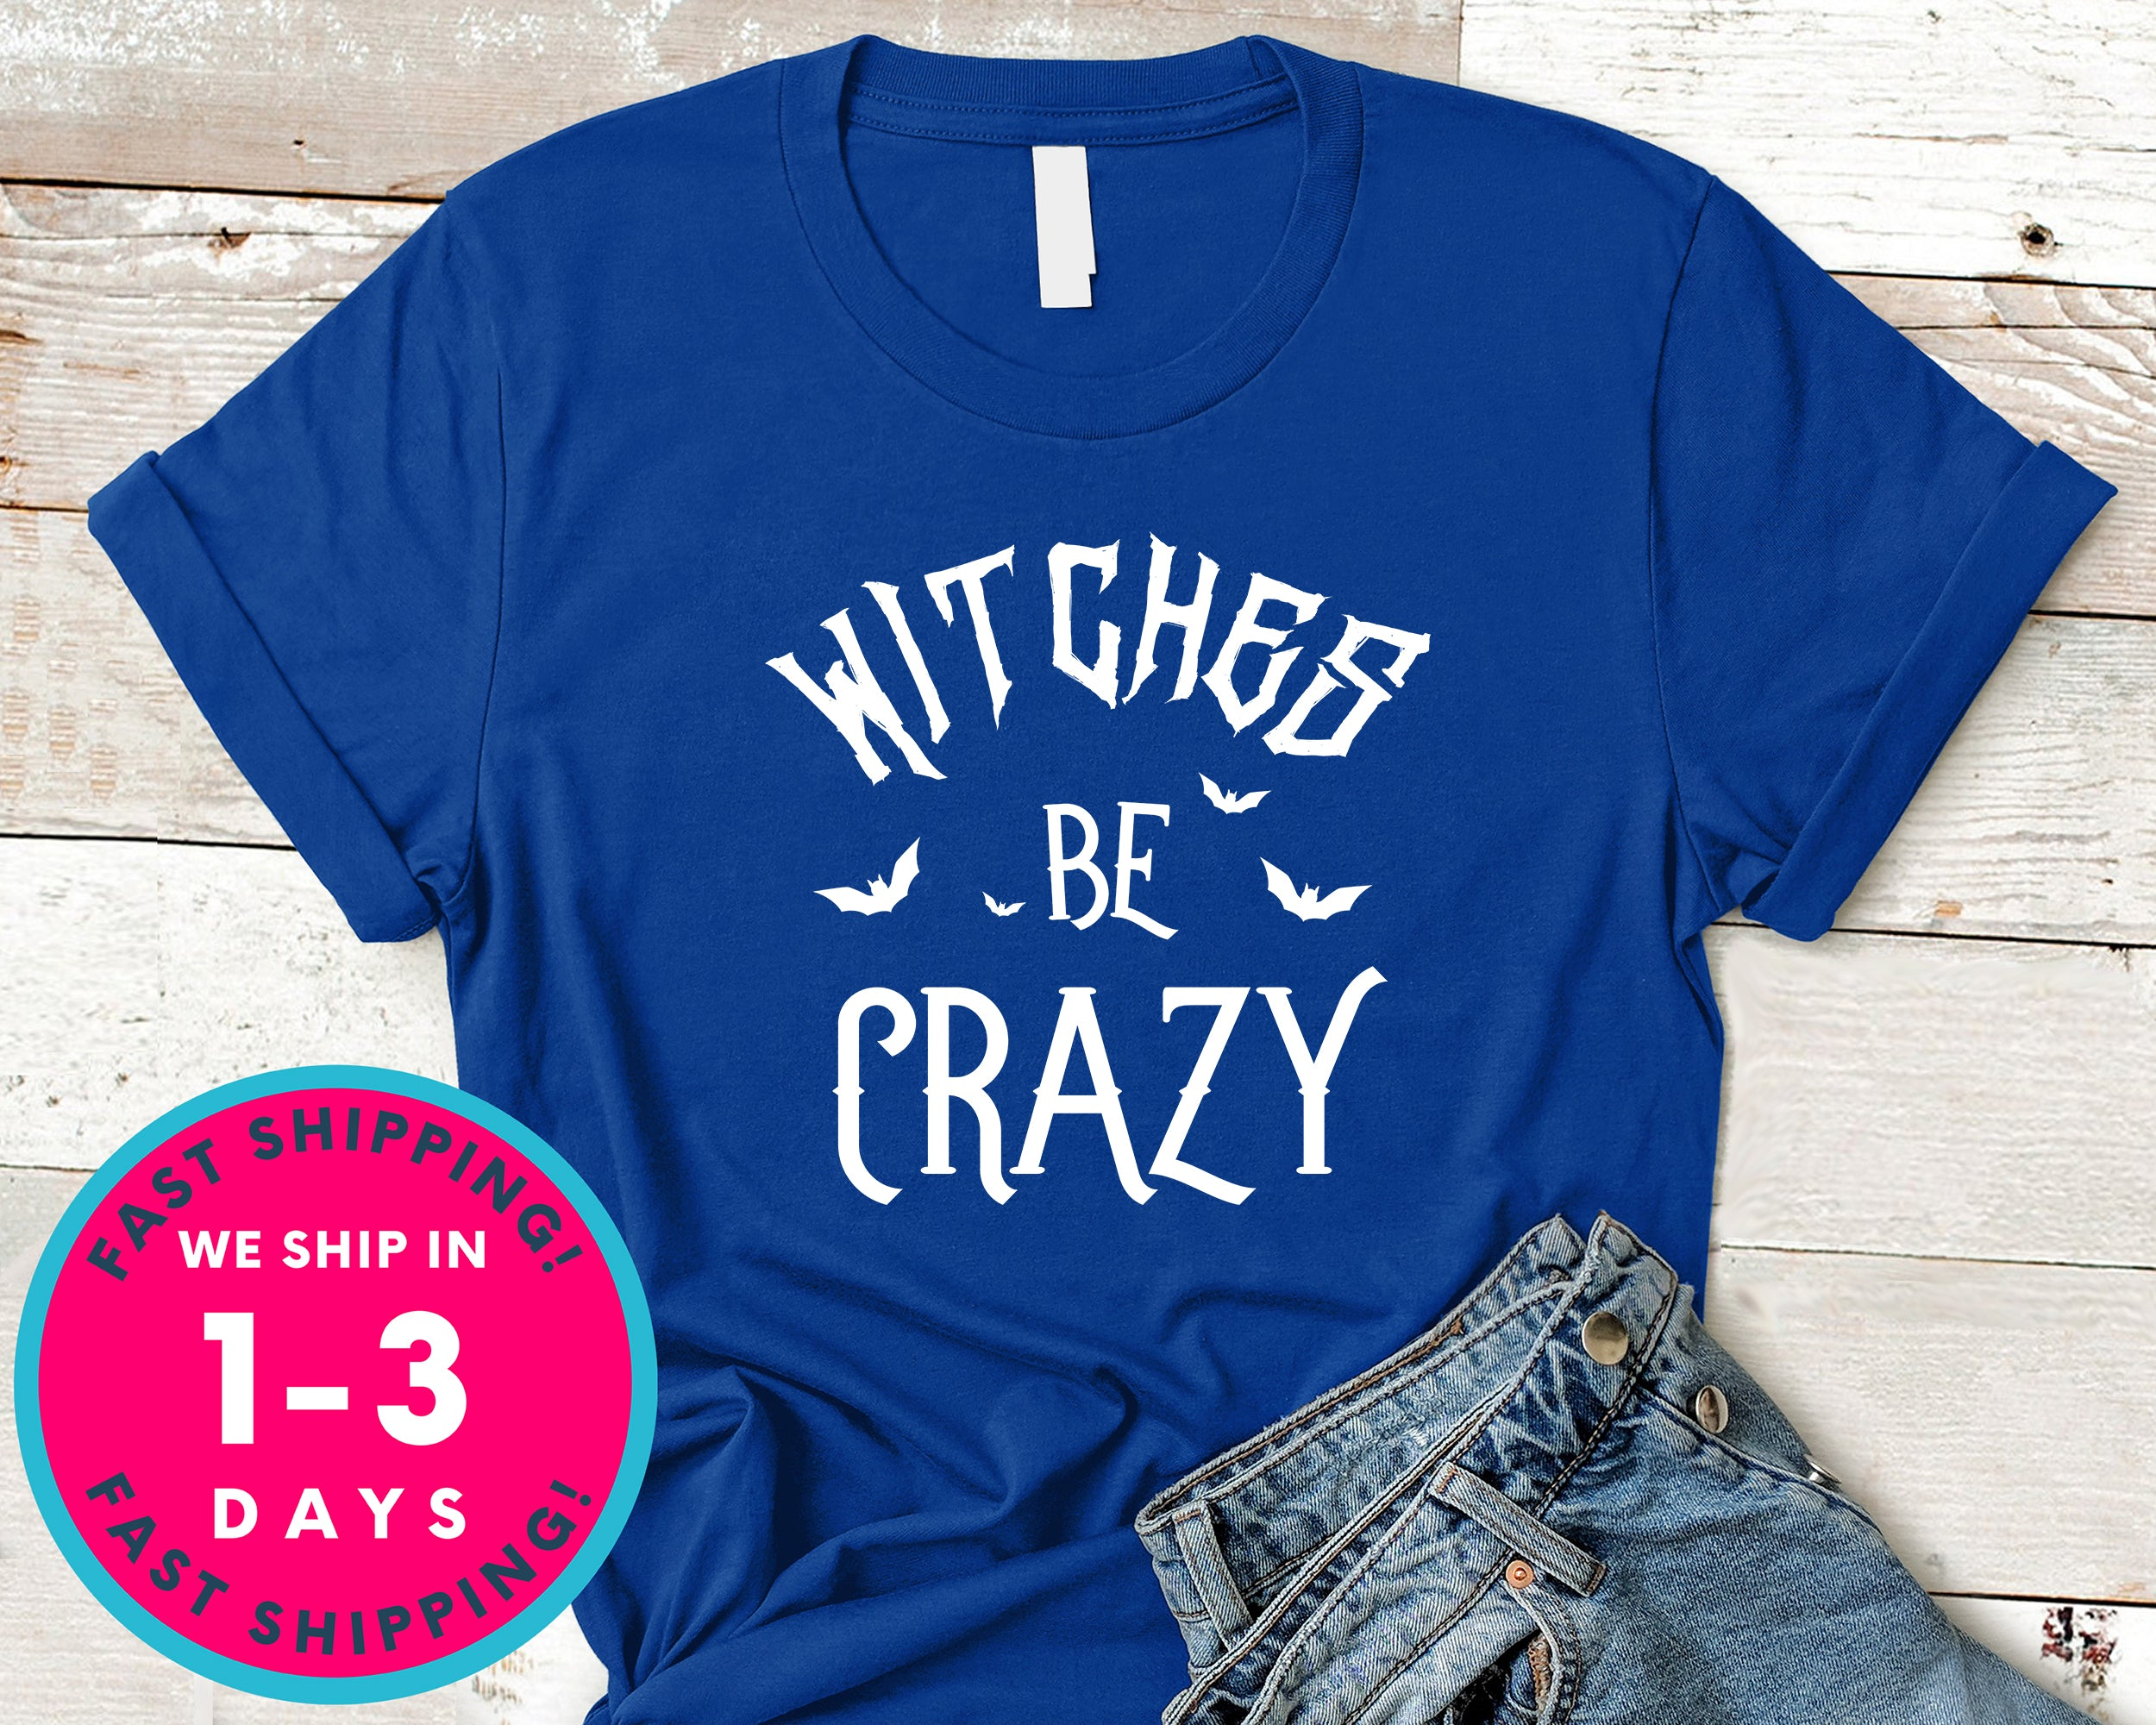 Witches Be Crazy T-Shirt - Halloween Horror Scary Shirt